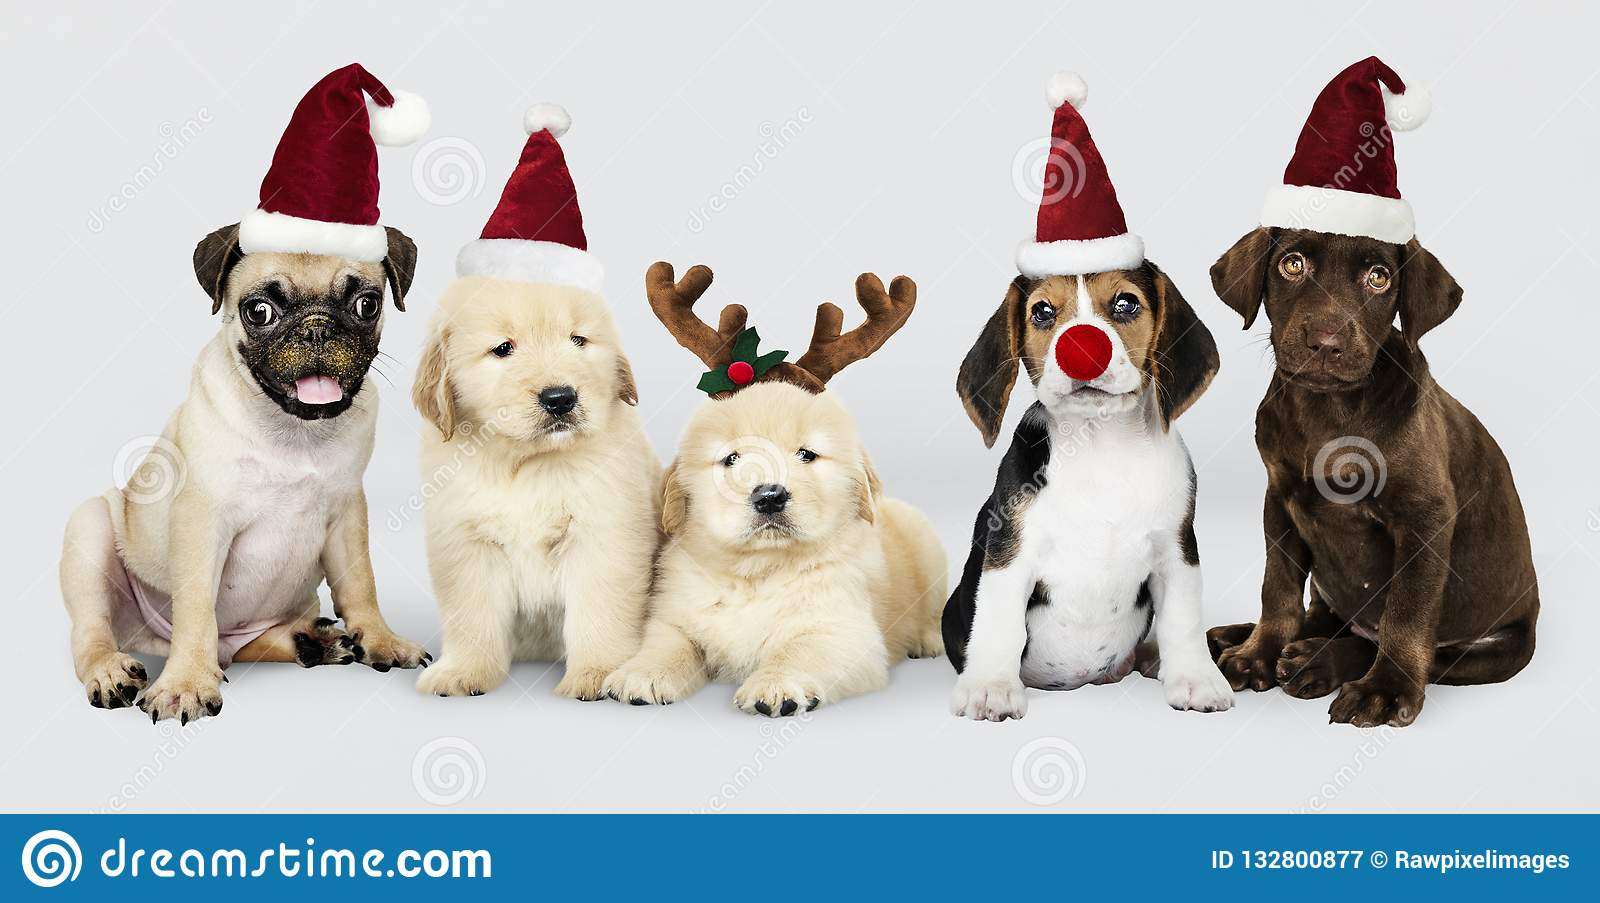 Group Of Puppies Wearing Christmas Hats To Celebrate Christmas Stock